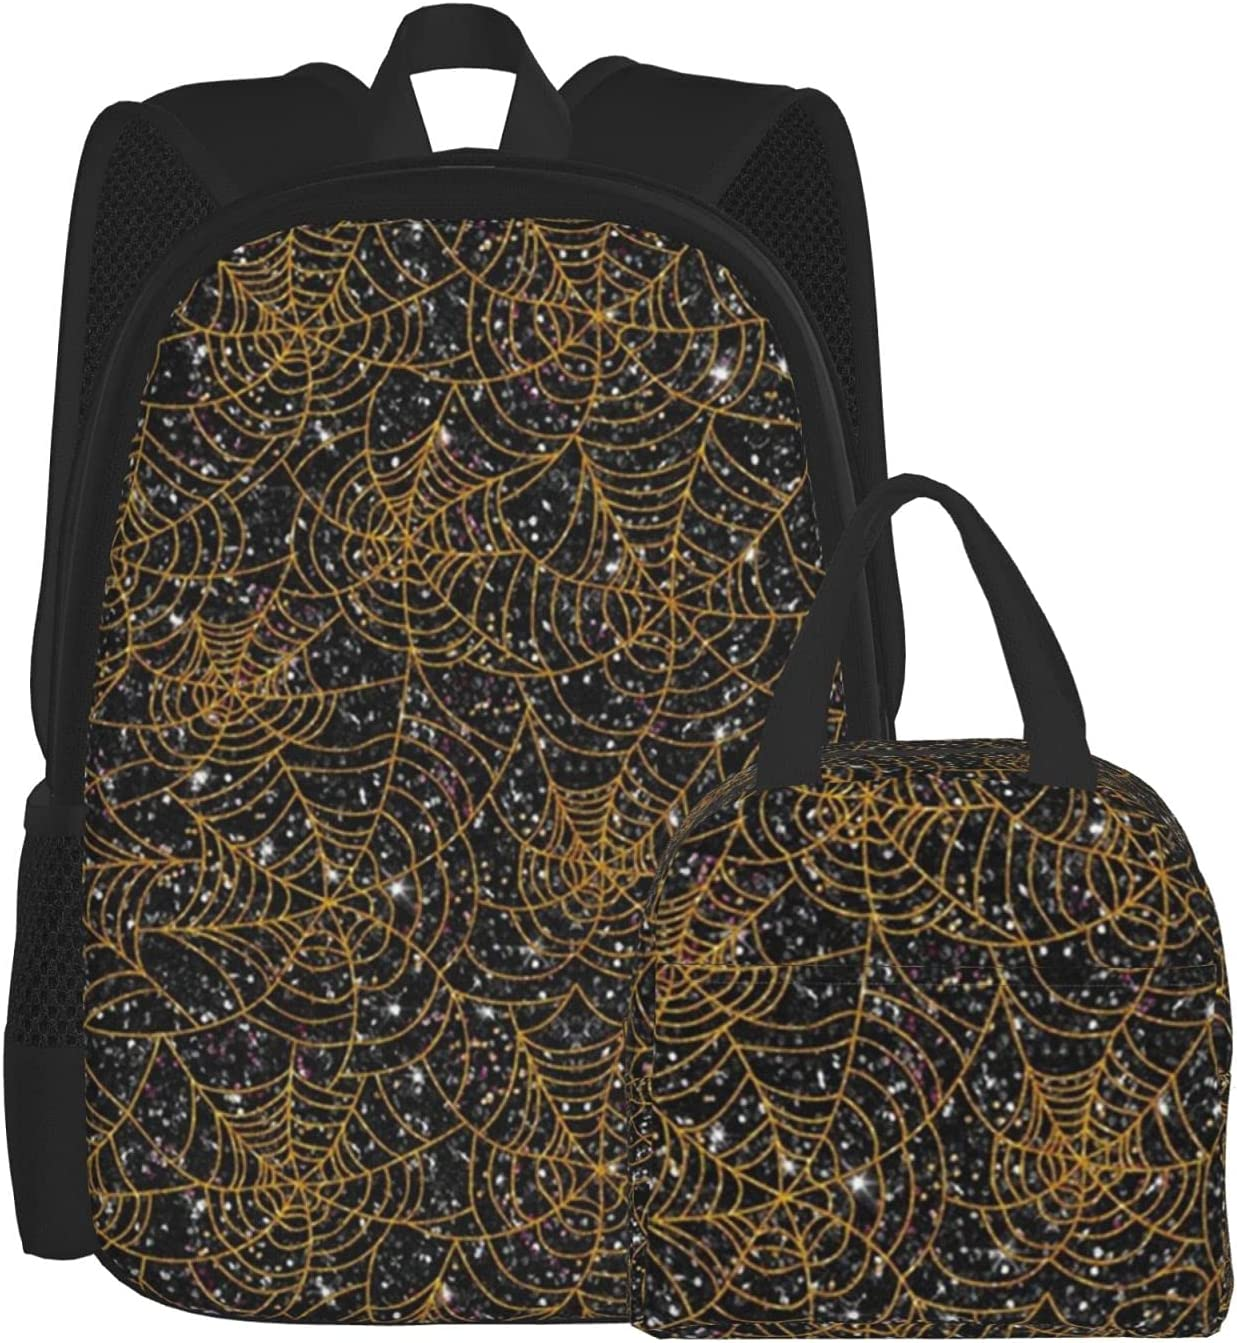 Lunch Bag And Backpack Combination latest Spider Web Pack Orange Surprise price Black